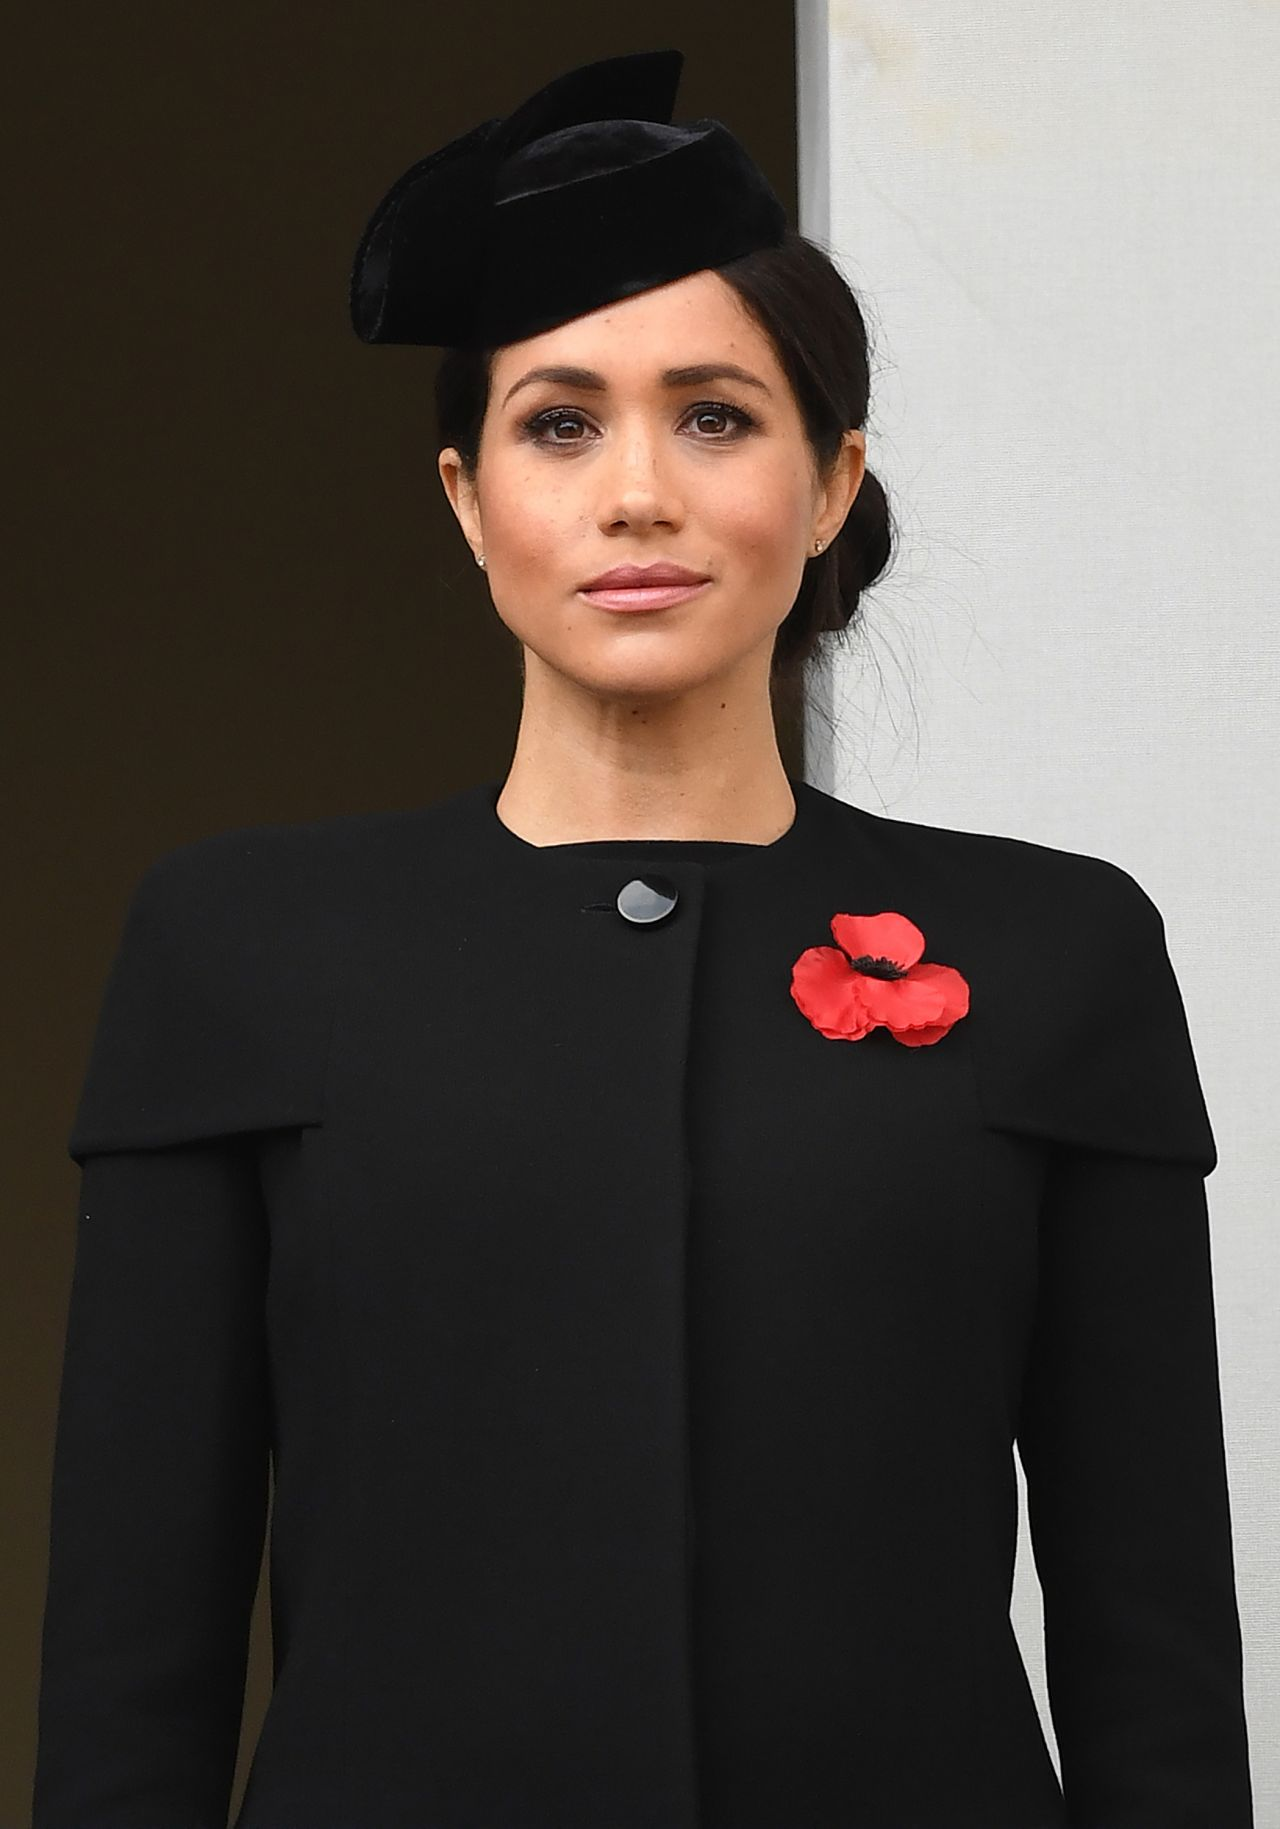 meghan-markle-annual-remembrance-sunday-memorial-in-london-11-11-2018-6.jpg